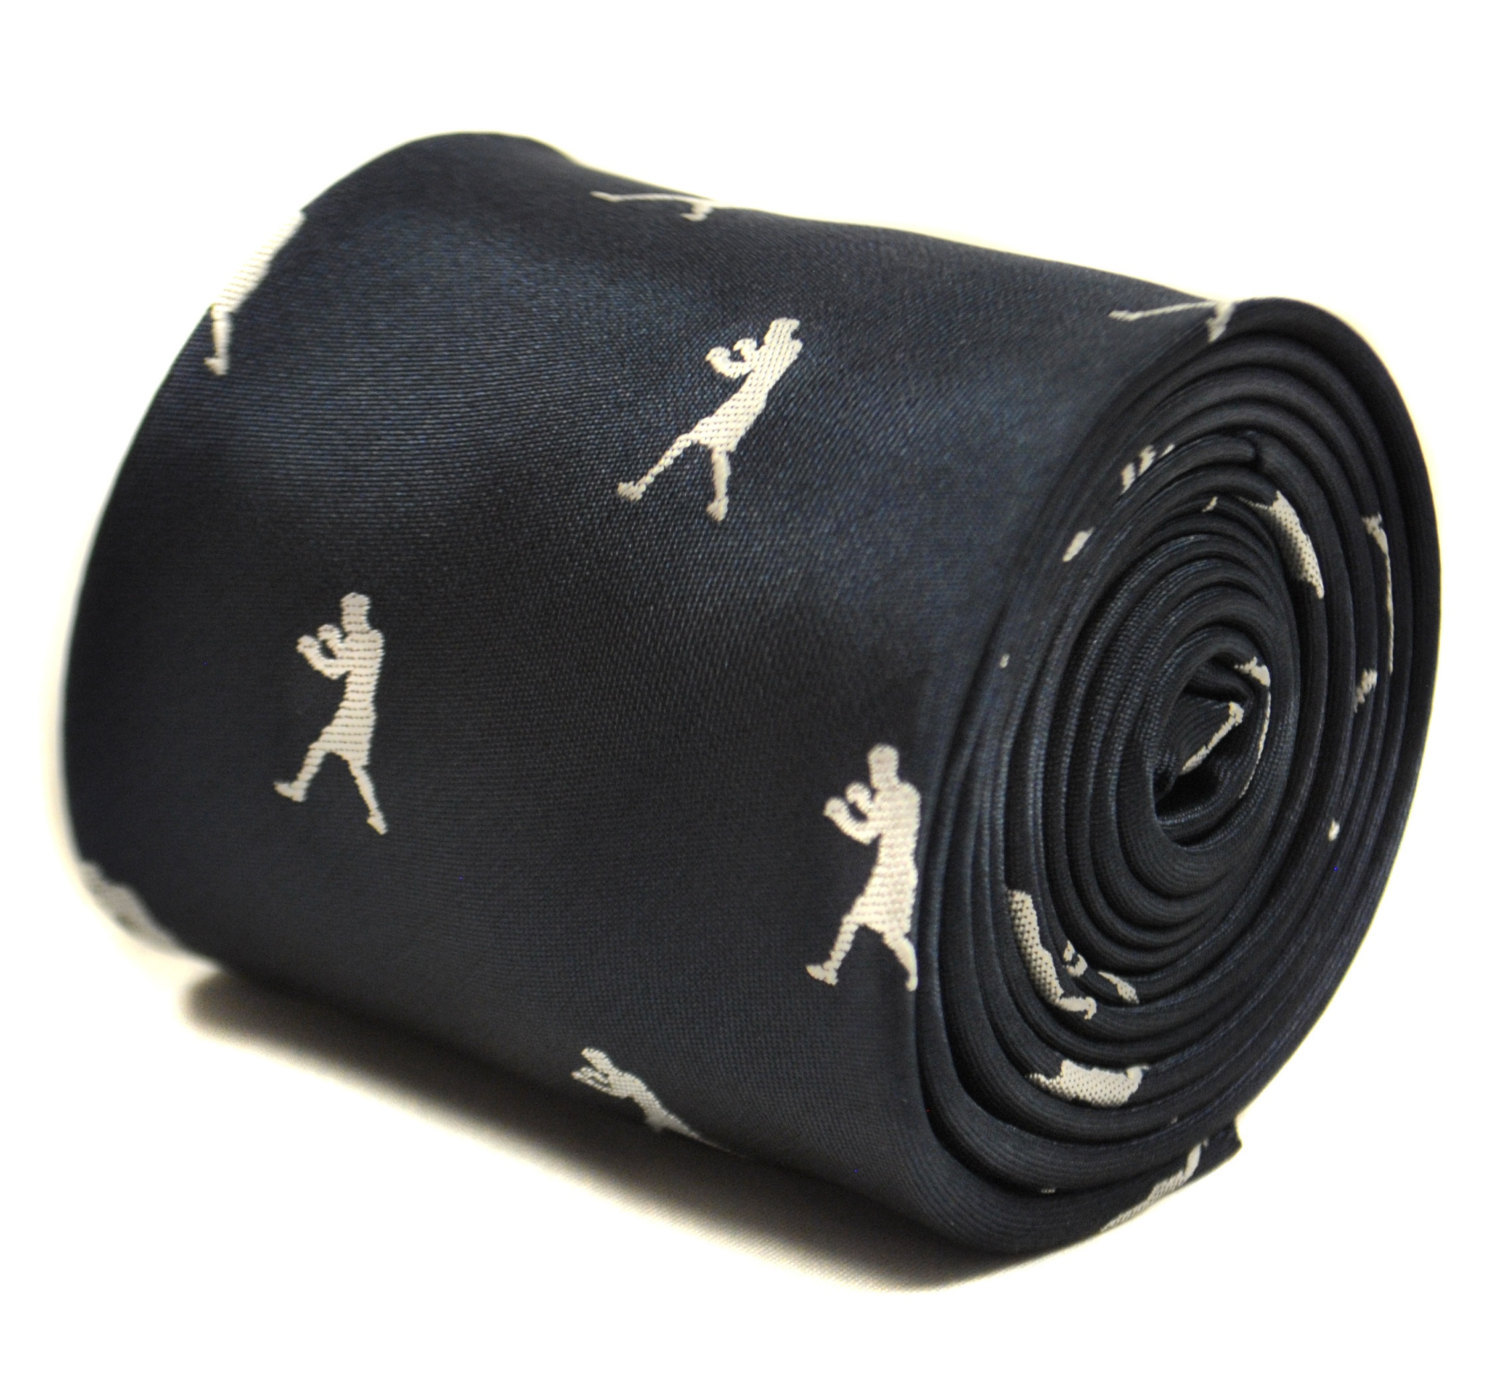 navy blue tie with boxing silhouette design with signature floral design to the